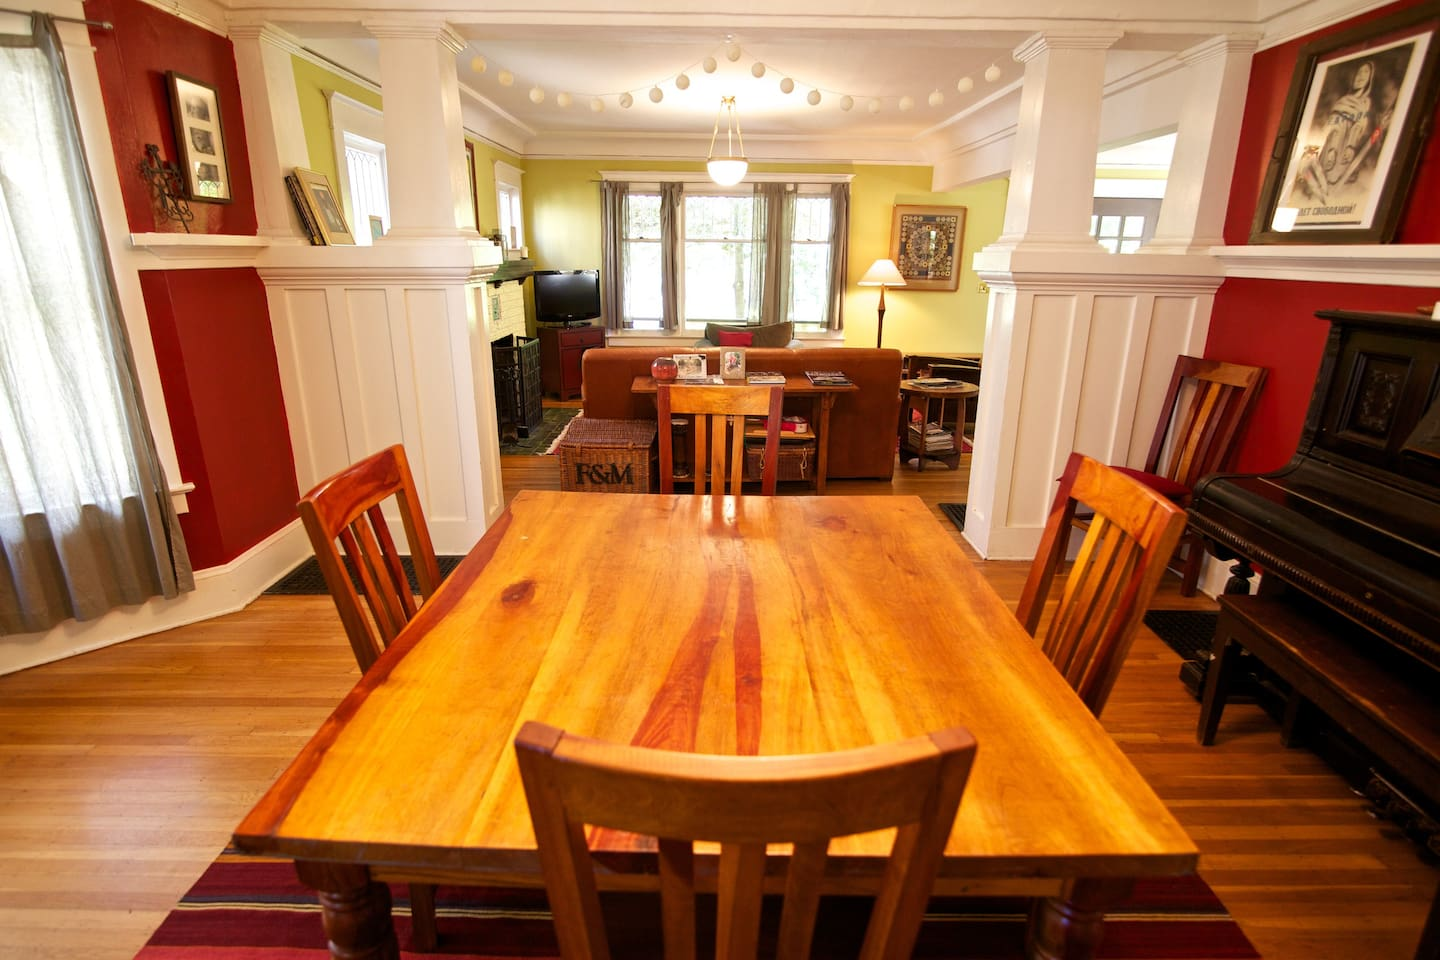 Dining room with salvaged wood table and piano